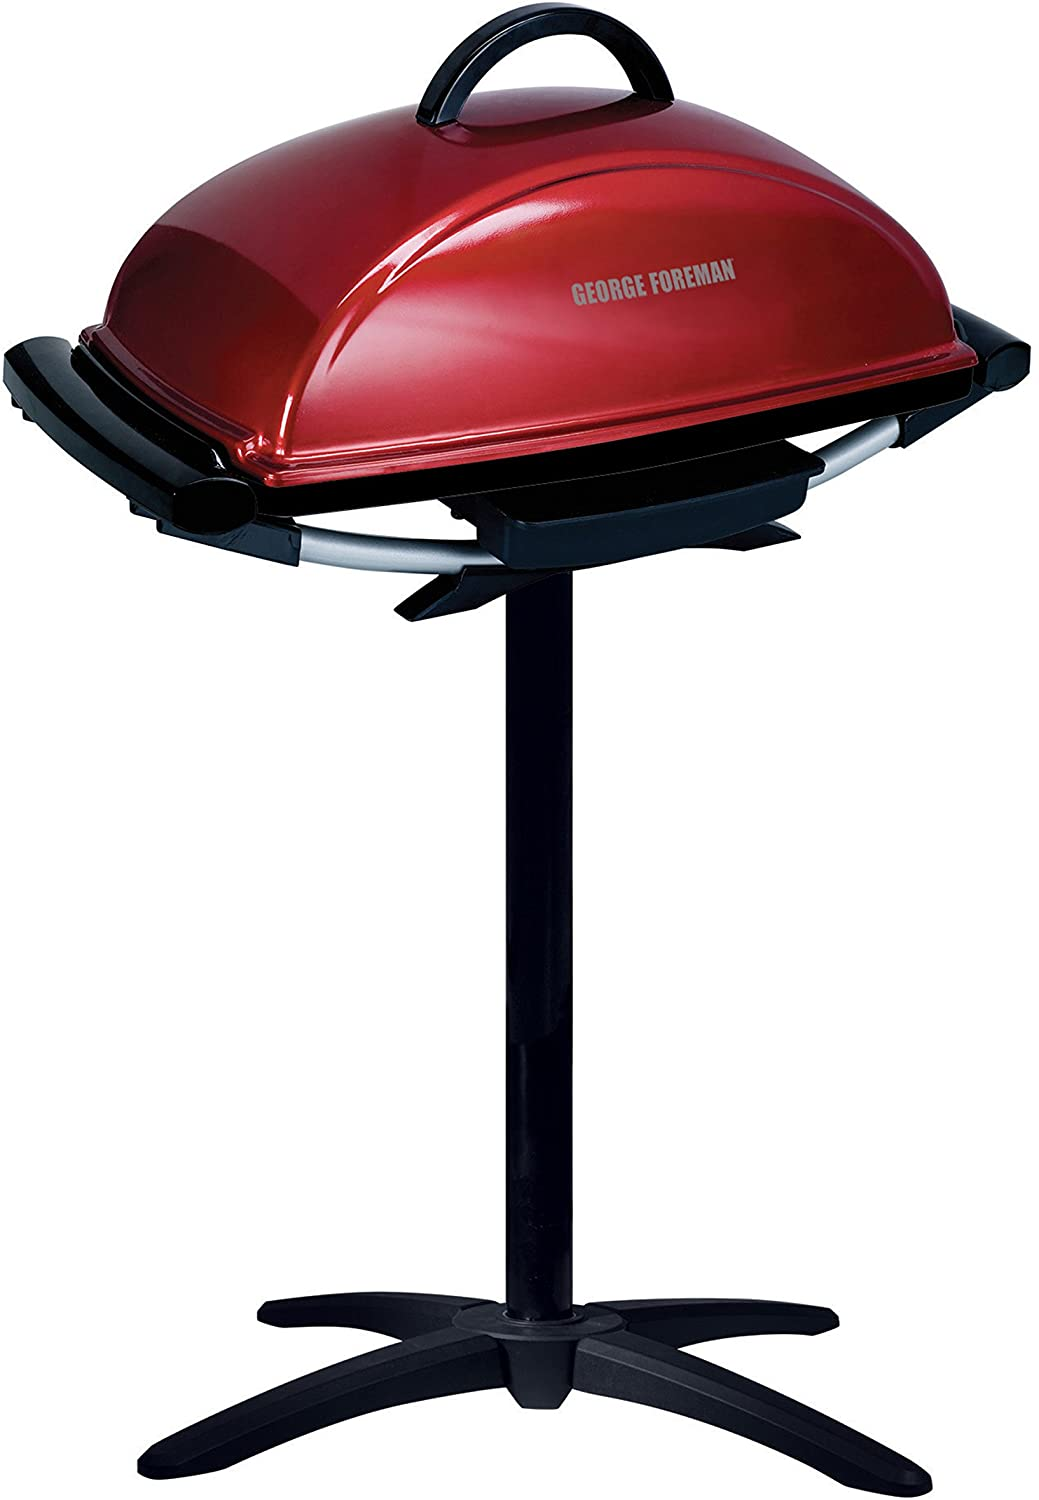 George Foreman Rectangular Electric Grill in red